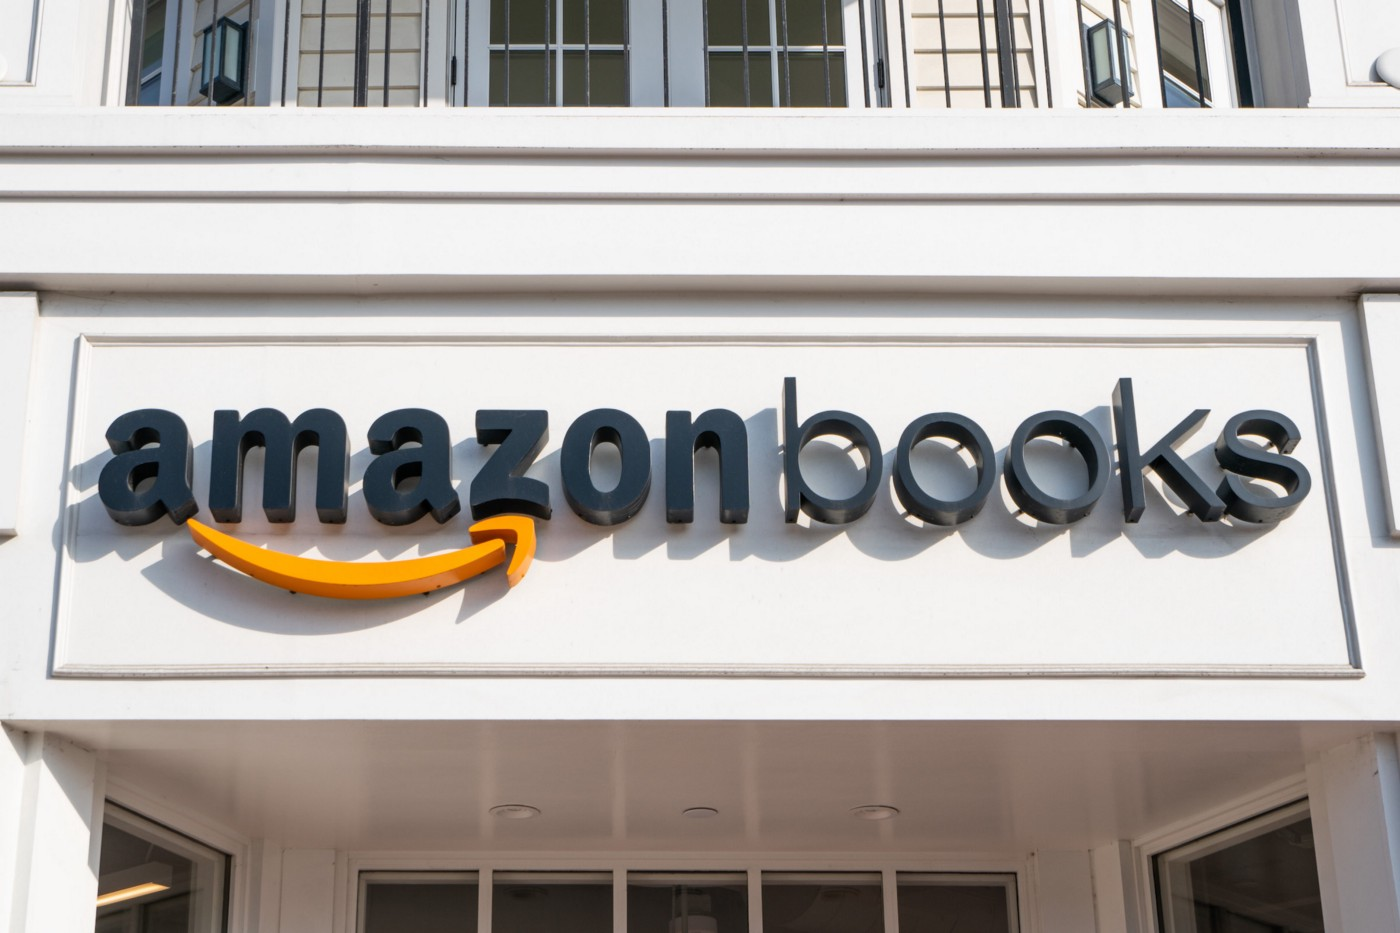 Exterior view of an Amazon Books store.